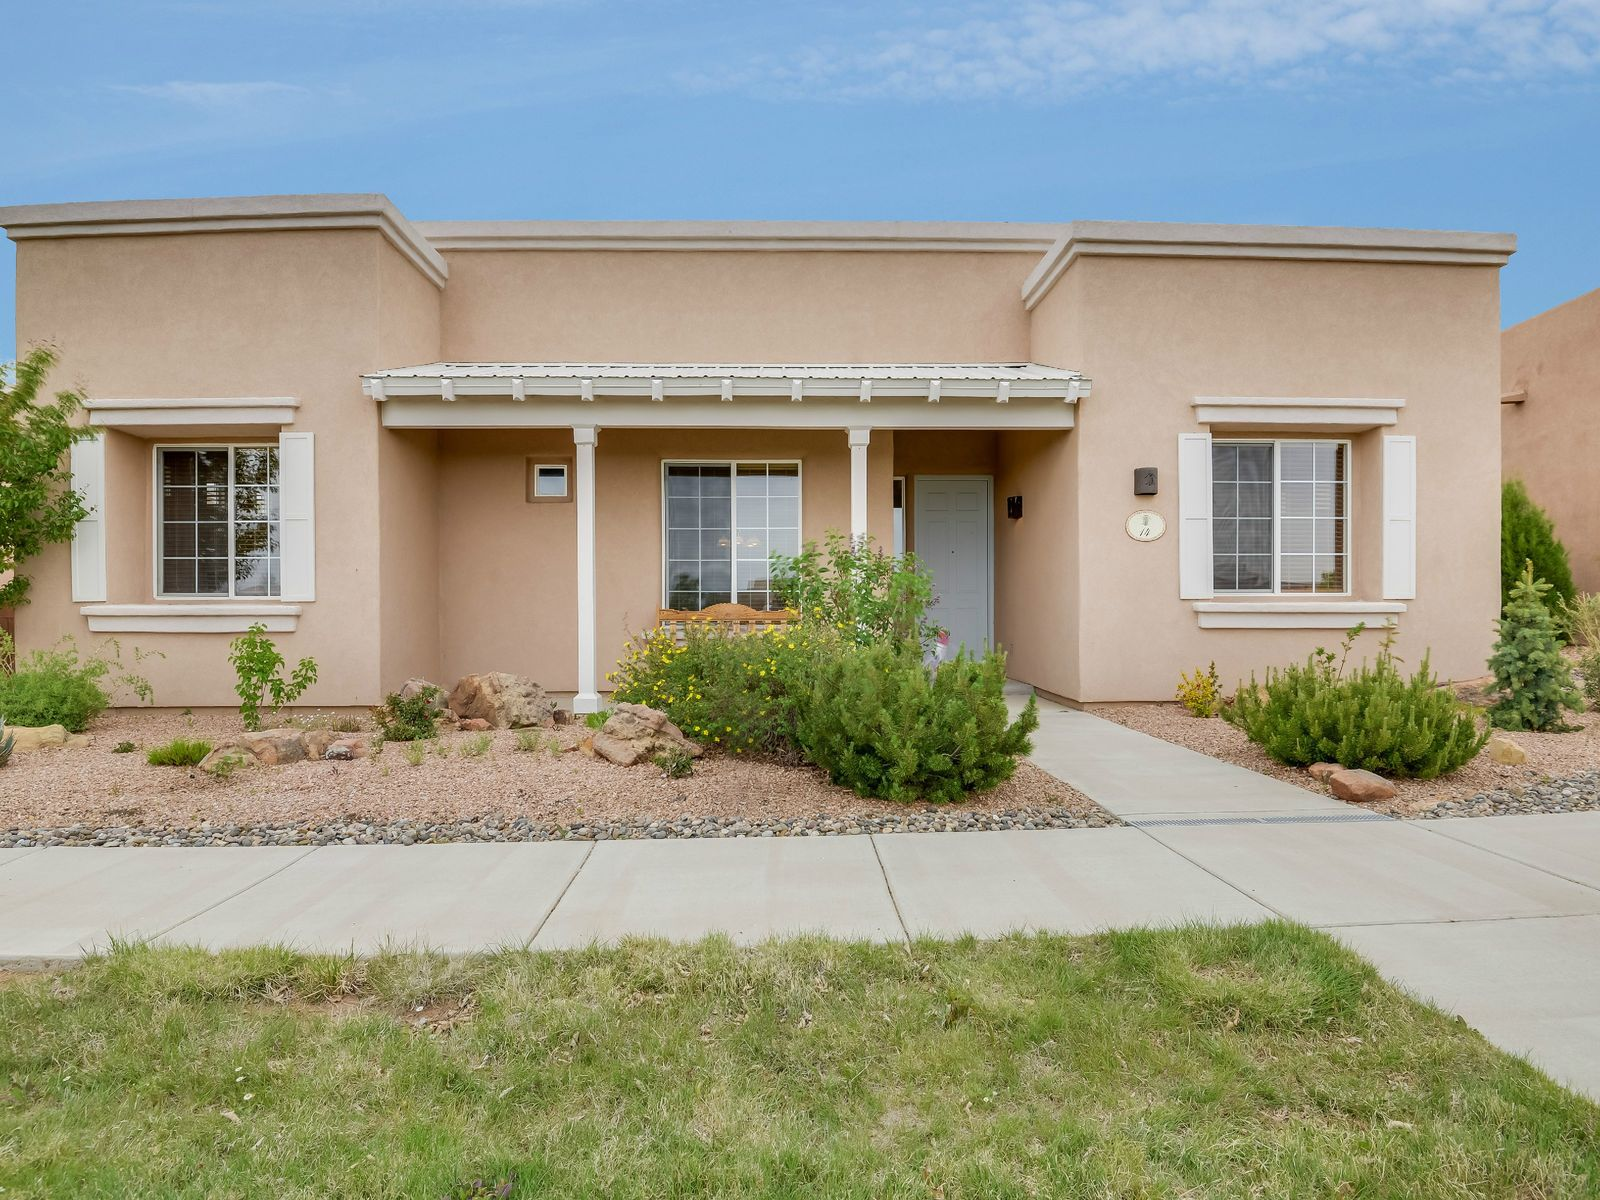 14 Cimarron Pass, Santa Fe NM Single Family Home - Santa Fe Real Estate